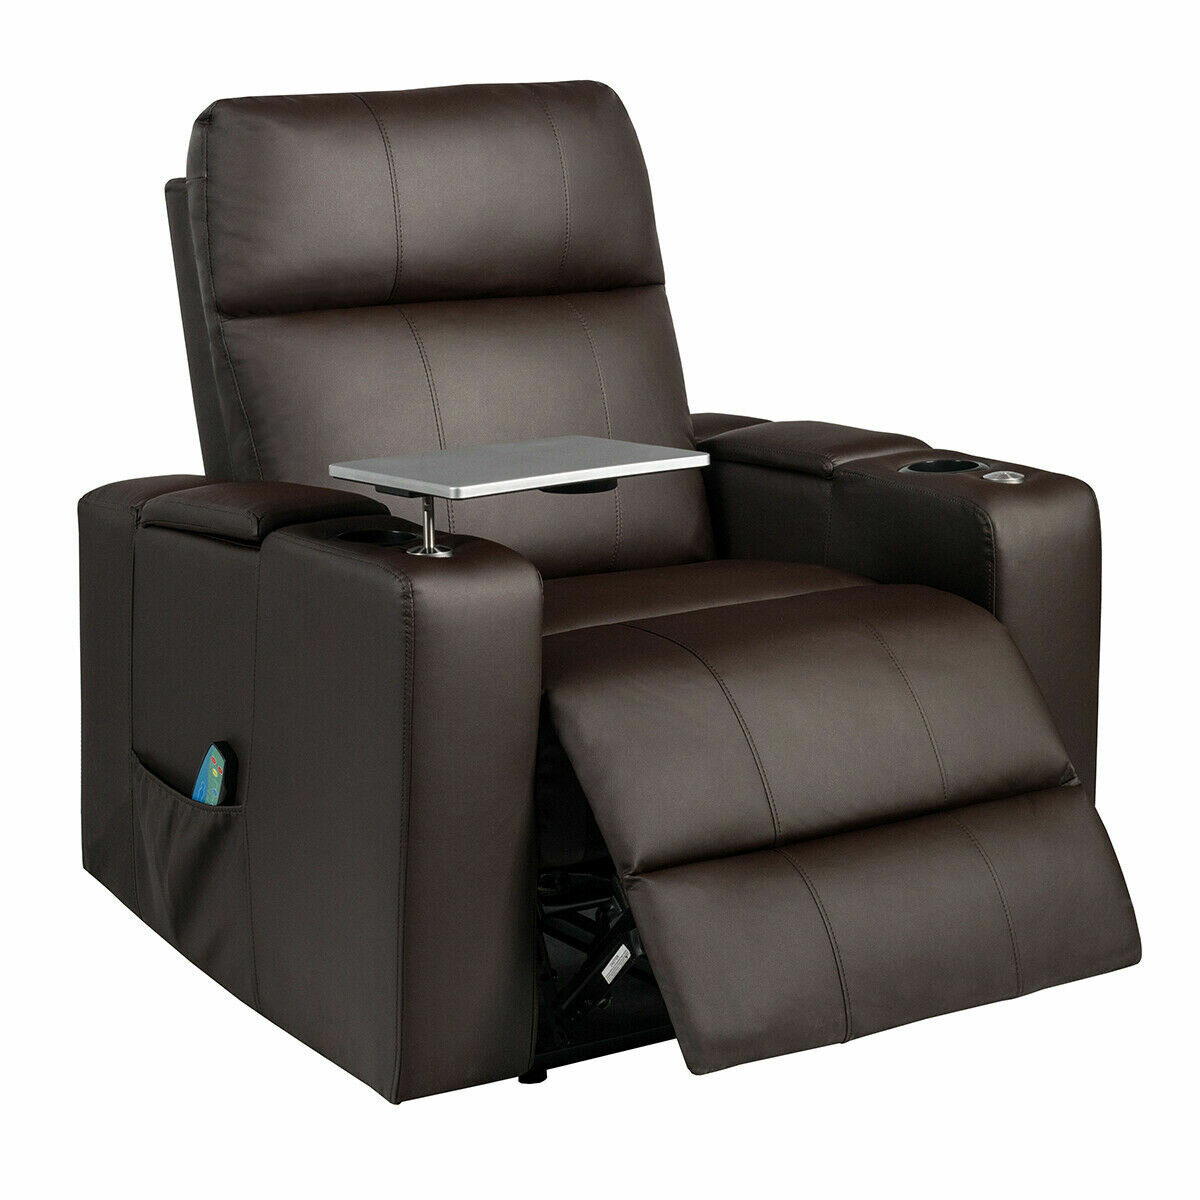 Massage Recliner Chair Home Theatre Seating Wswivel Tray&remote Control Coffee